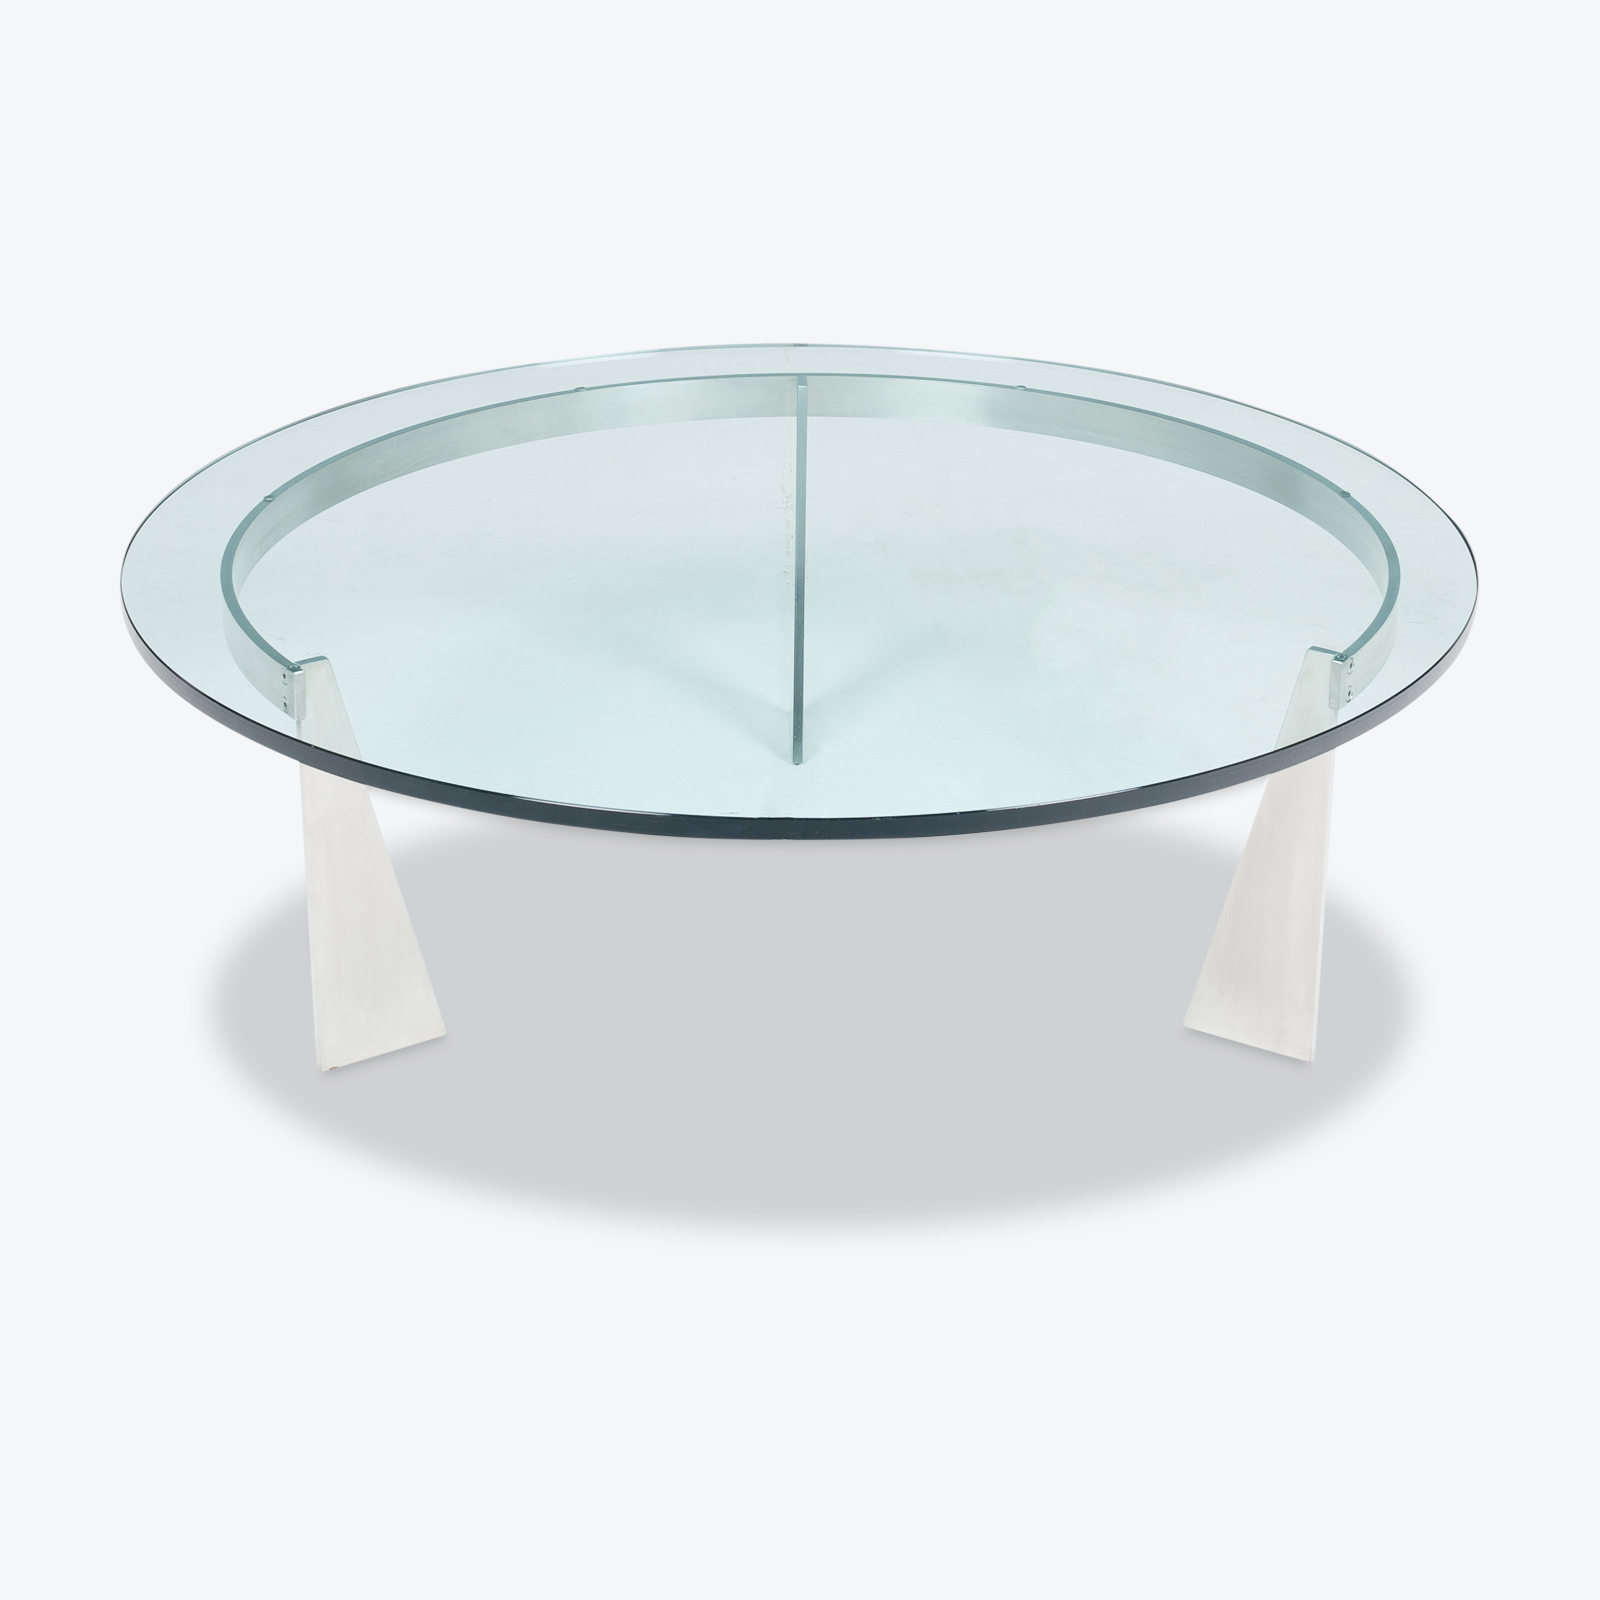 Round Coffee Table By Metaform, 1980s, The Netherlands Hero